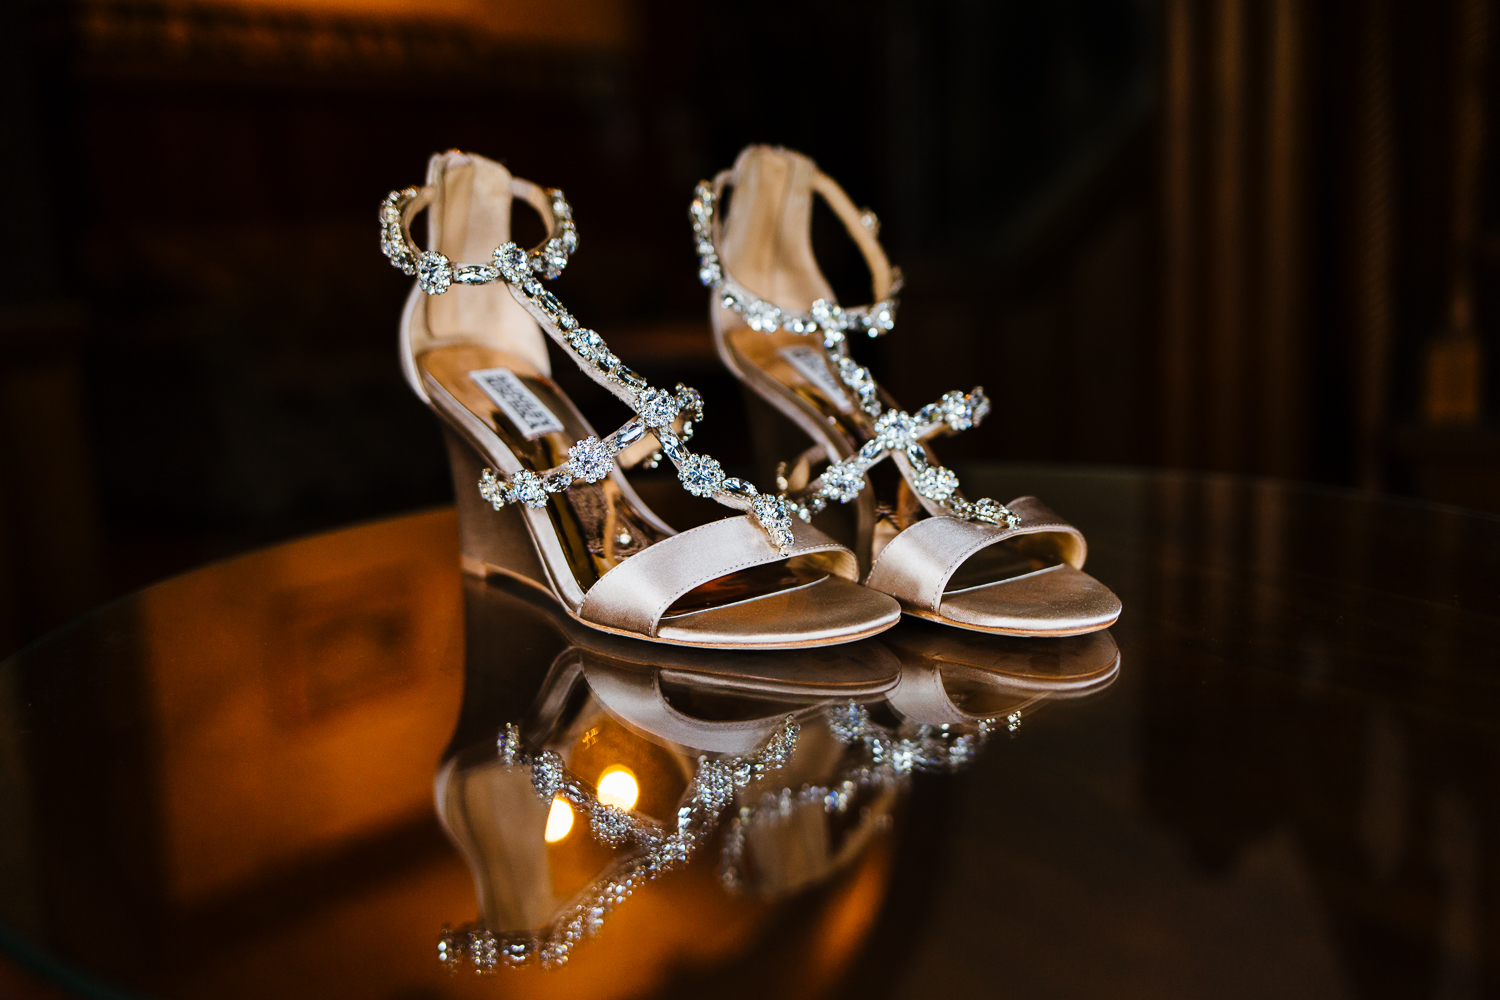 Sparkly wedding shoes reflected on glass table.